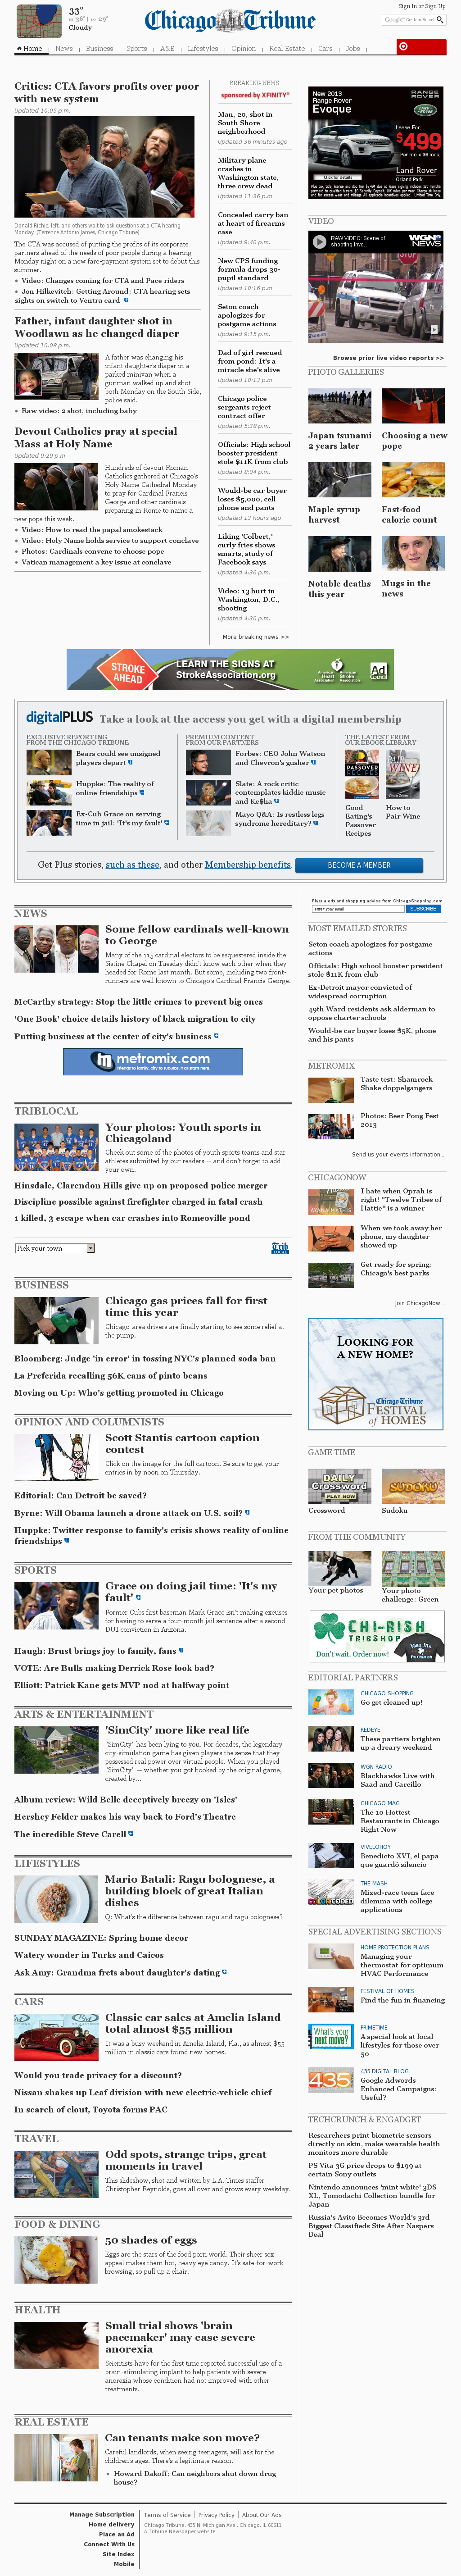 Chicago Tribune at Tuesday March 12, 2013, 6:03 a.m. UTC